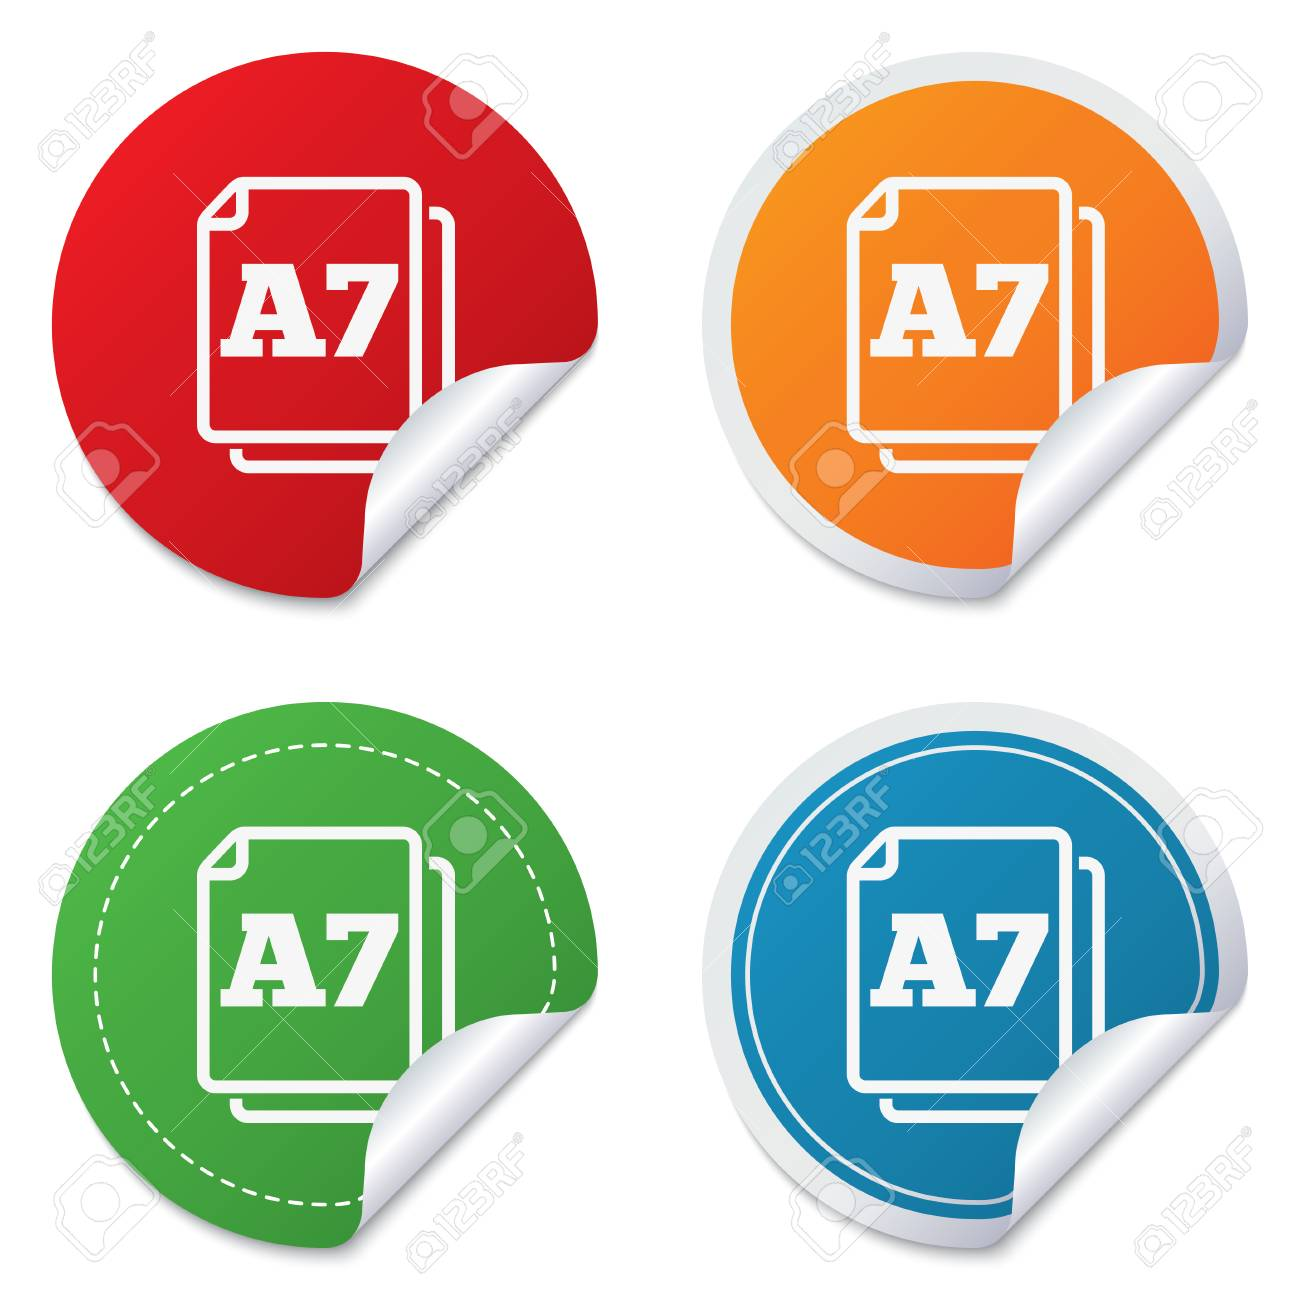 Paper size A7 standard icon. File document symbol. Round stickers. Circle labels with shadows. Curved corner. Vector Stock Vector - 27739383